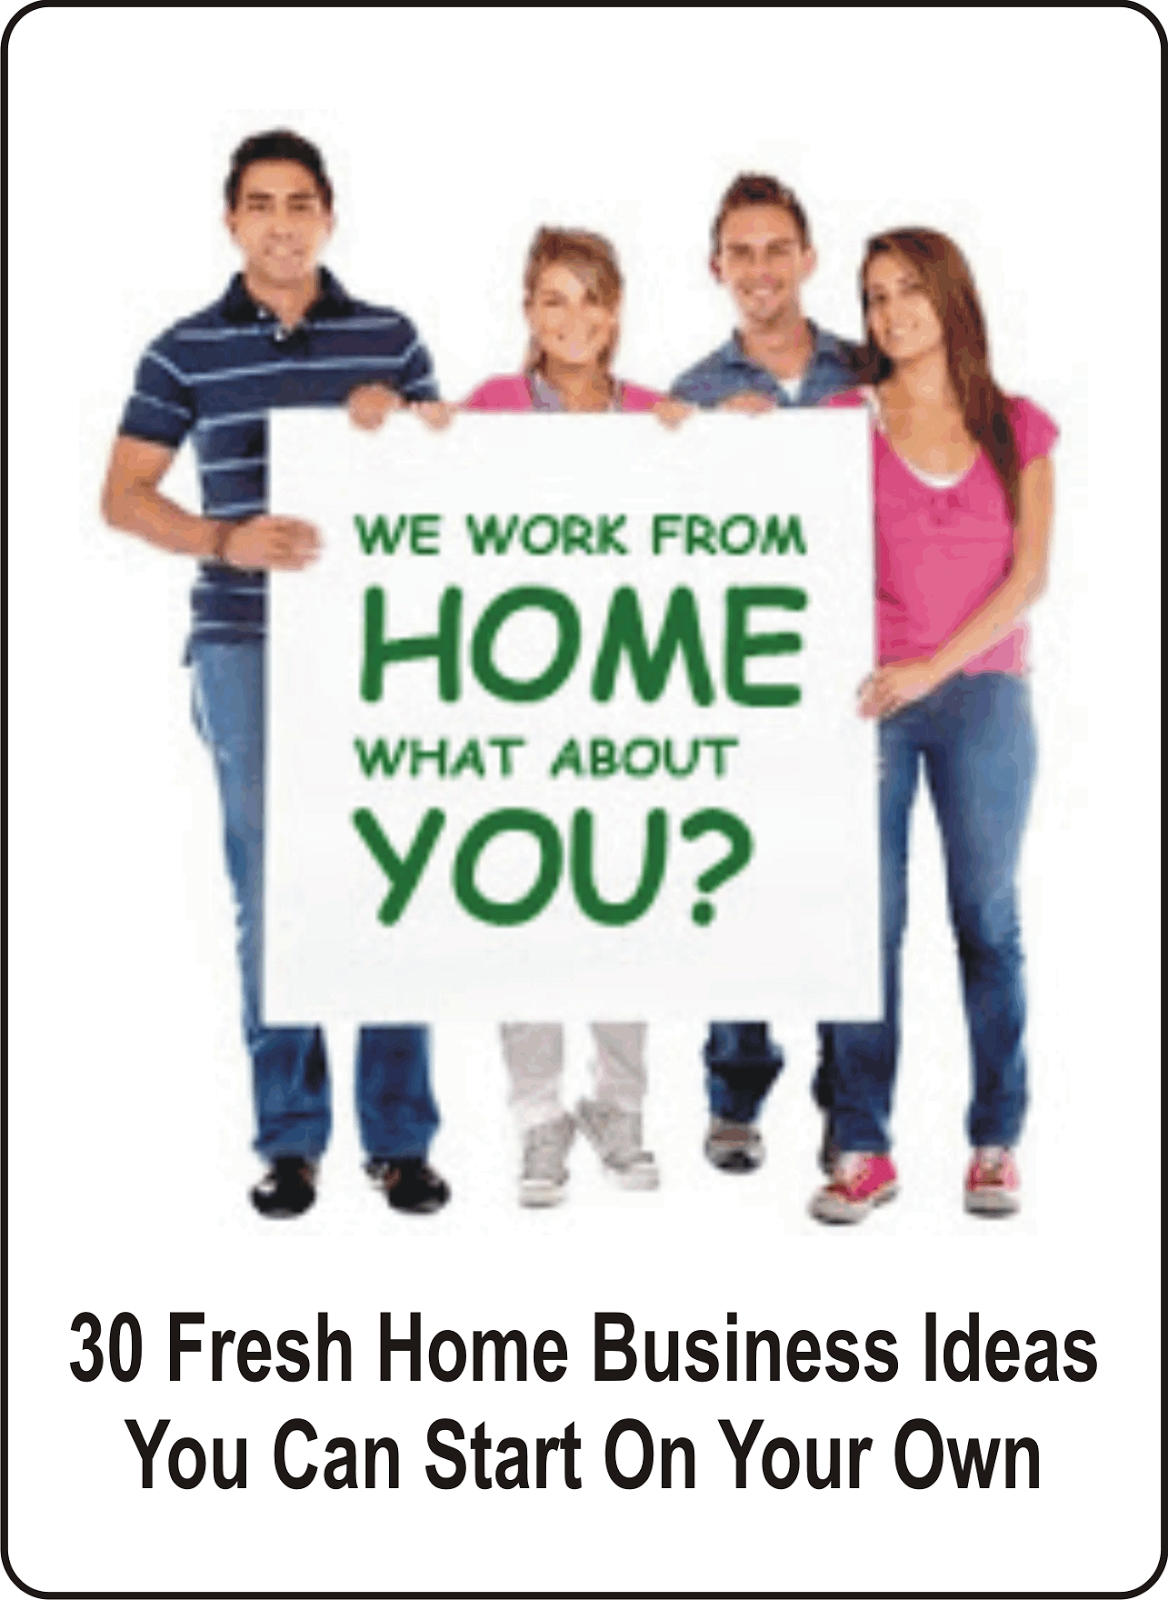 10 Lovable Starting Your Own Business Ideas charming starting own business ideas at home home designs elegant 1 2021